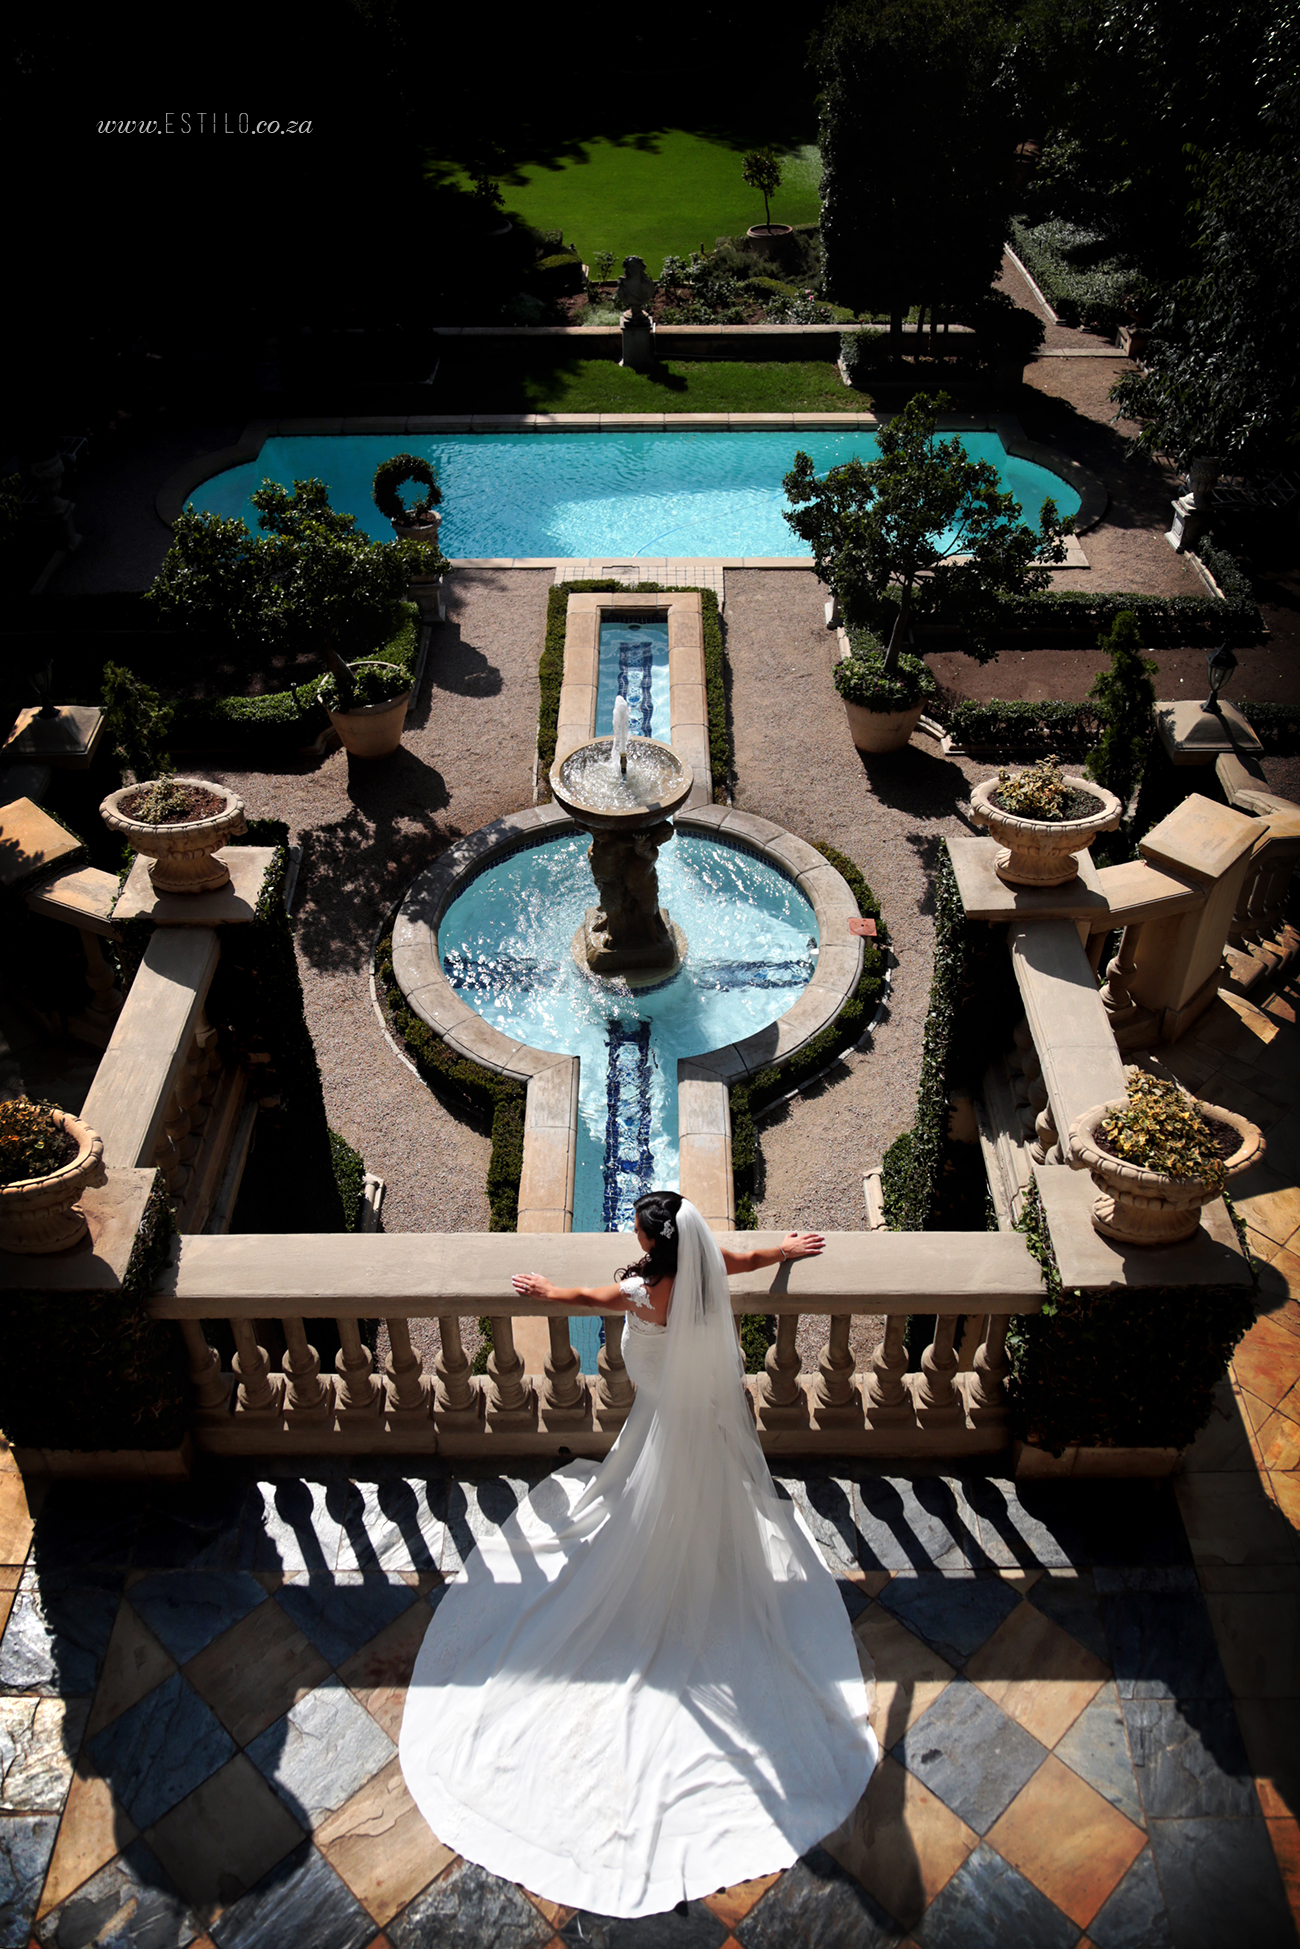 summer_place_wedding_photography_best_wedding_photographers_south_africa_traditional_greek_weddings6 2.jpg